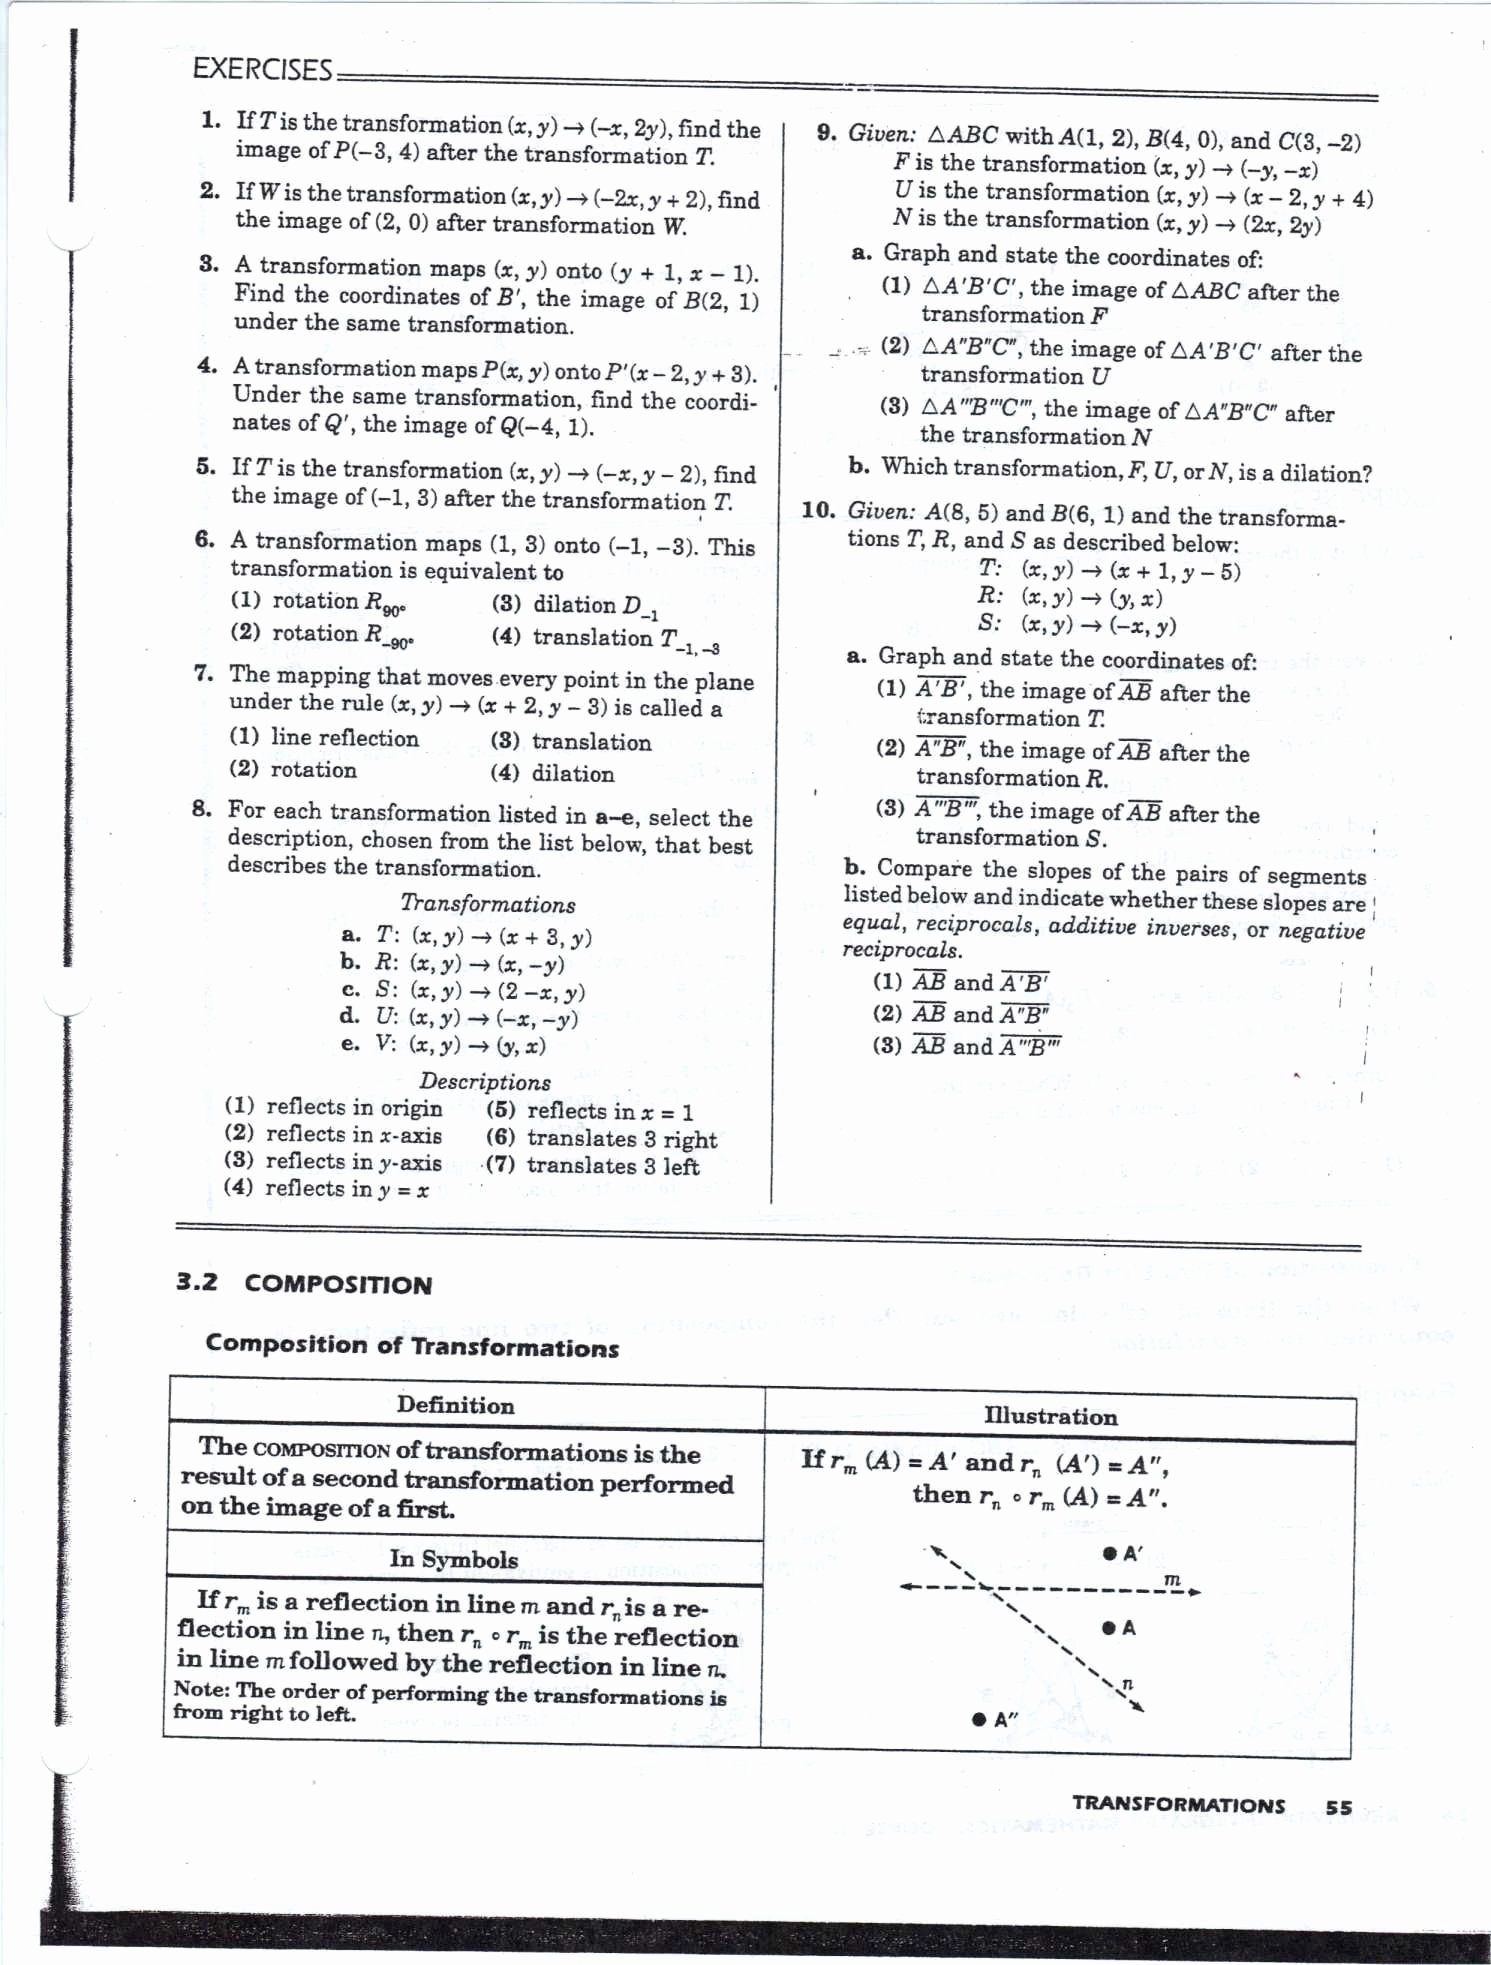 Geometry Transformation Composition Worksheet Answers New Transformations Algebra 2 Worksheet Transforming